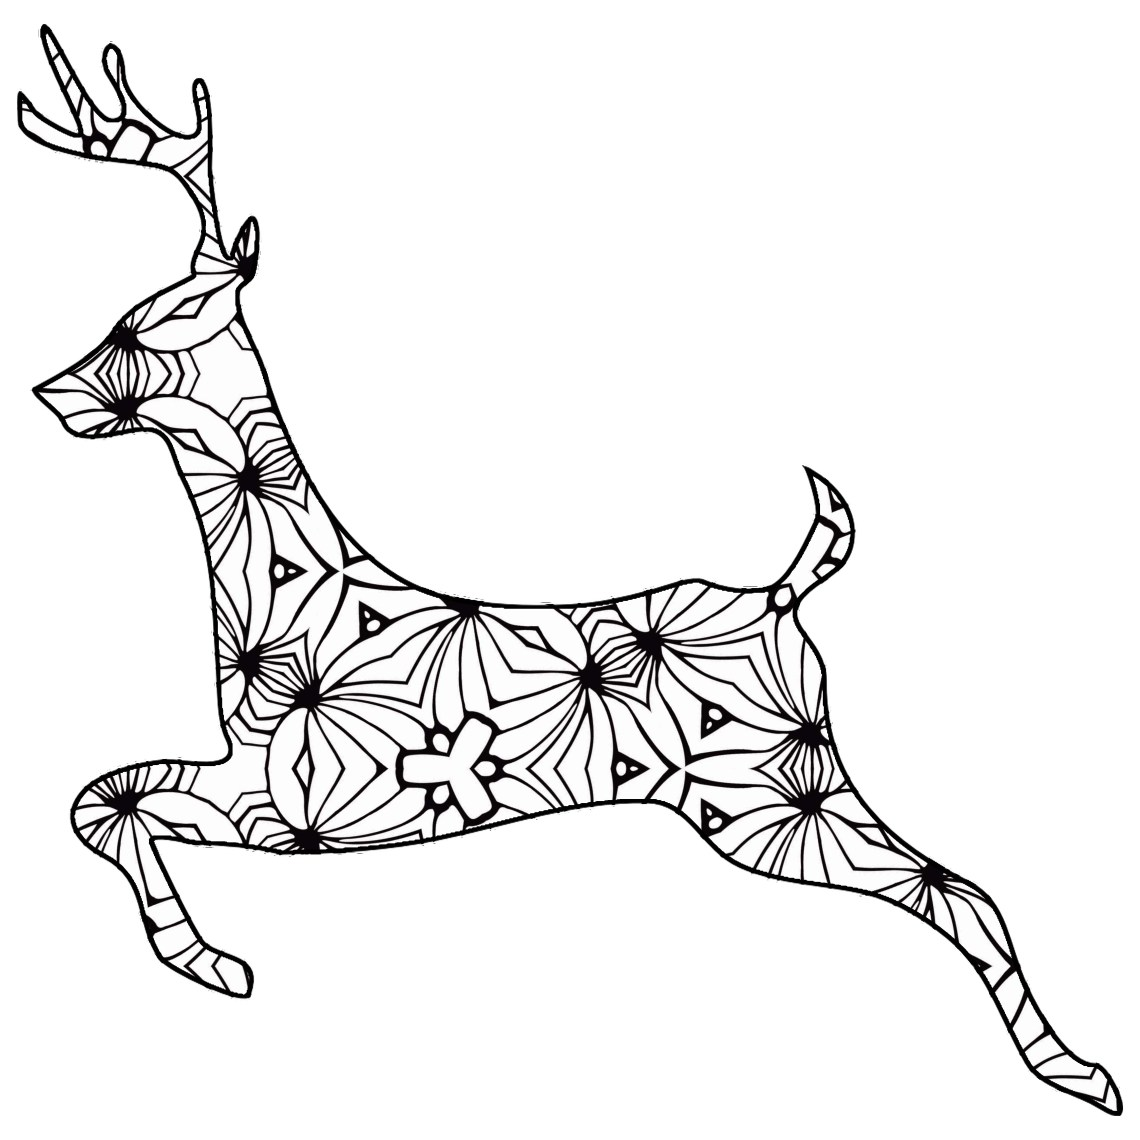 30 Free Printable Geometric Animal Coloring Pages | The ... | free printable colouring sheets animals